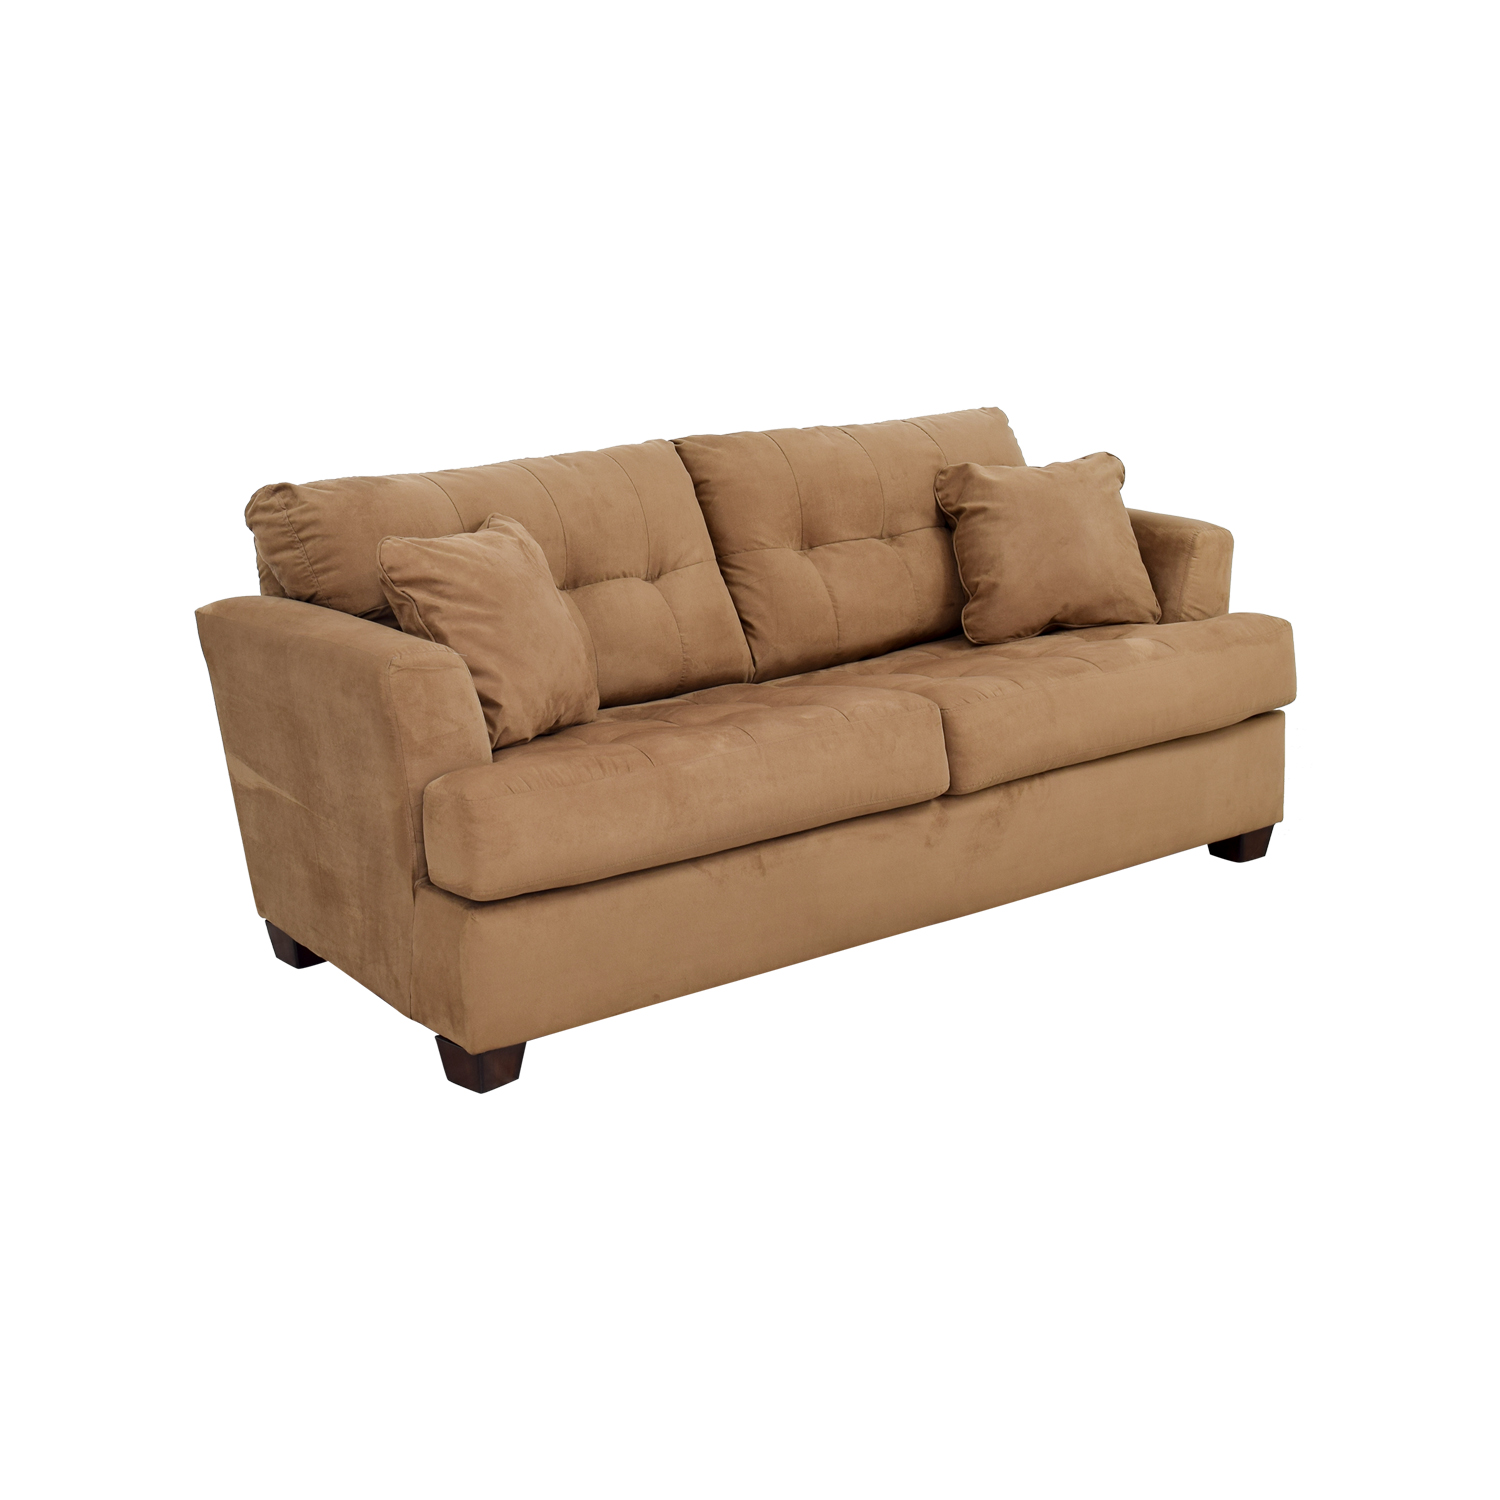 Tan microfiber couch tan microfiber couch and loveseat for Microfiber sectional sofa